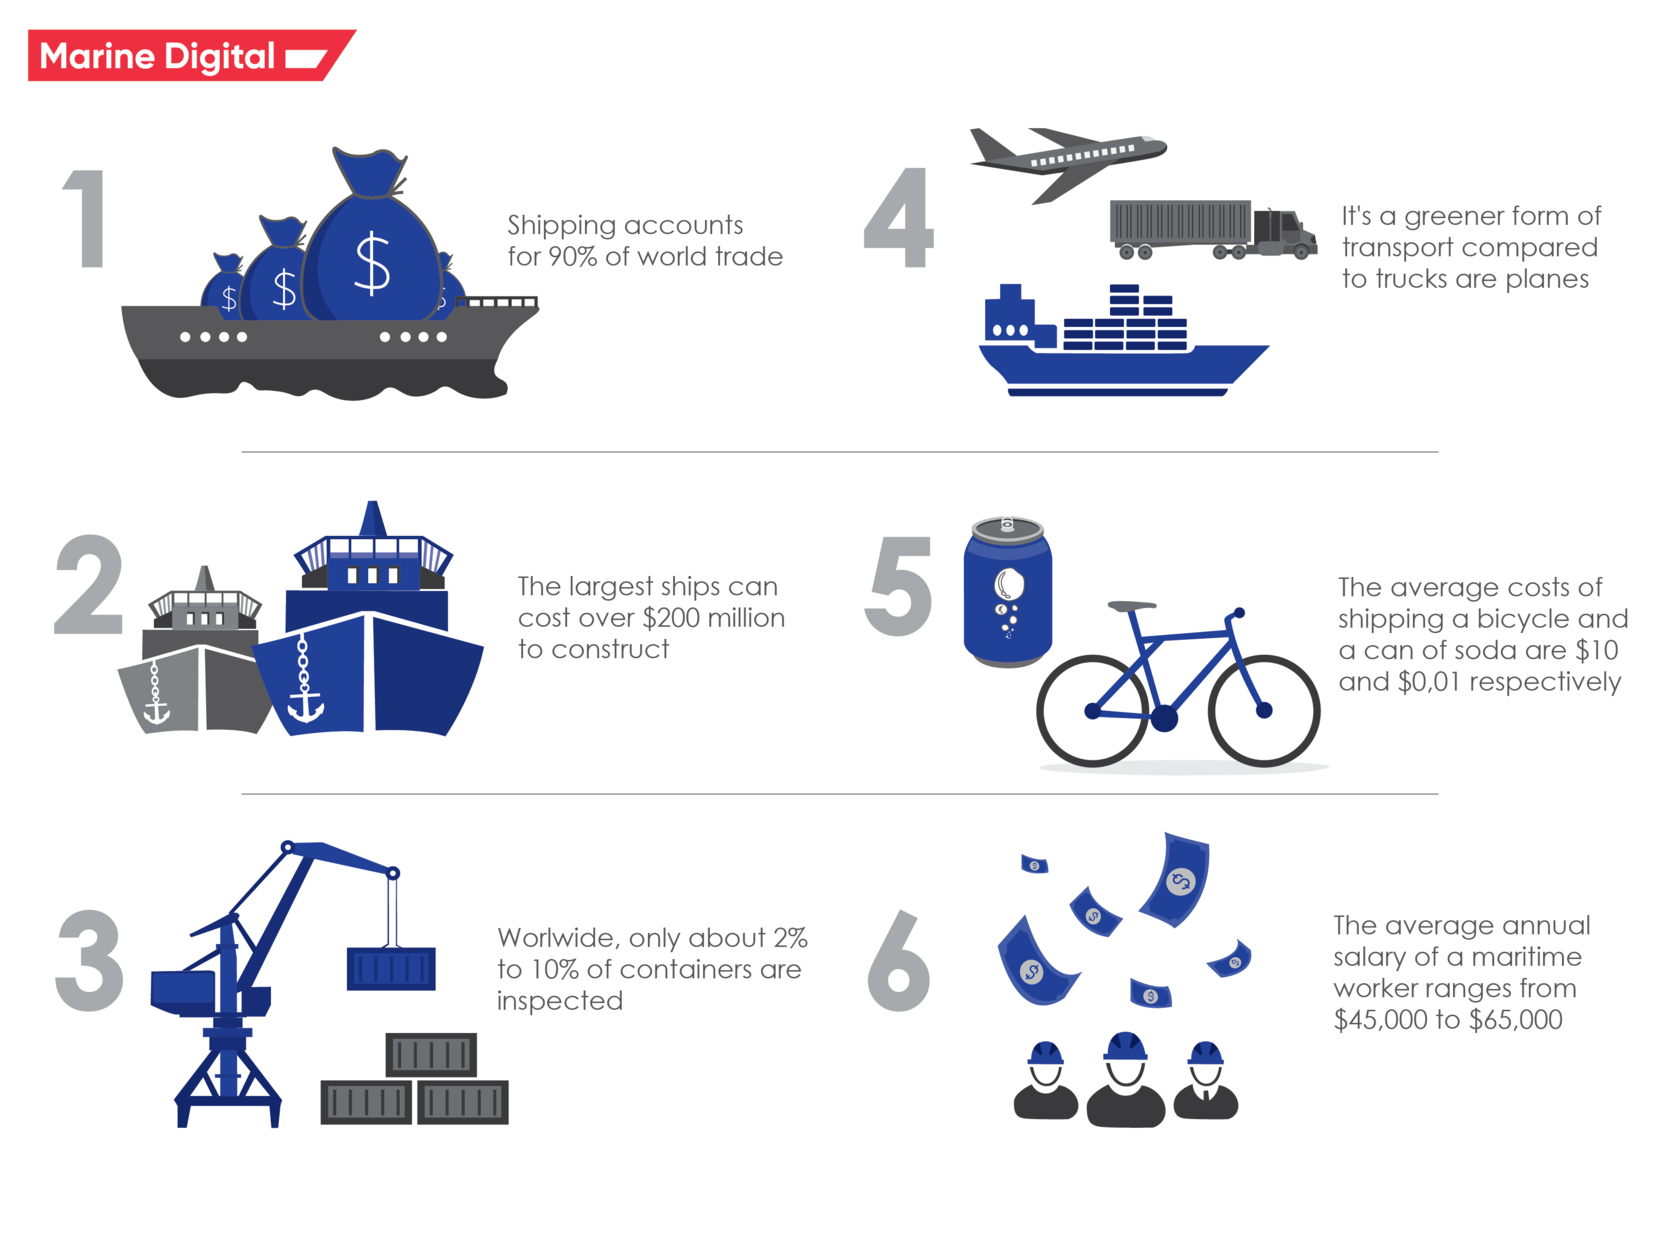 facts about the Shipping Industry